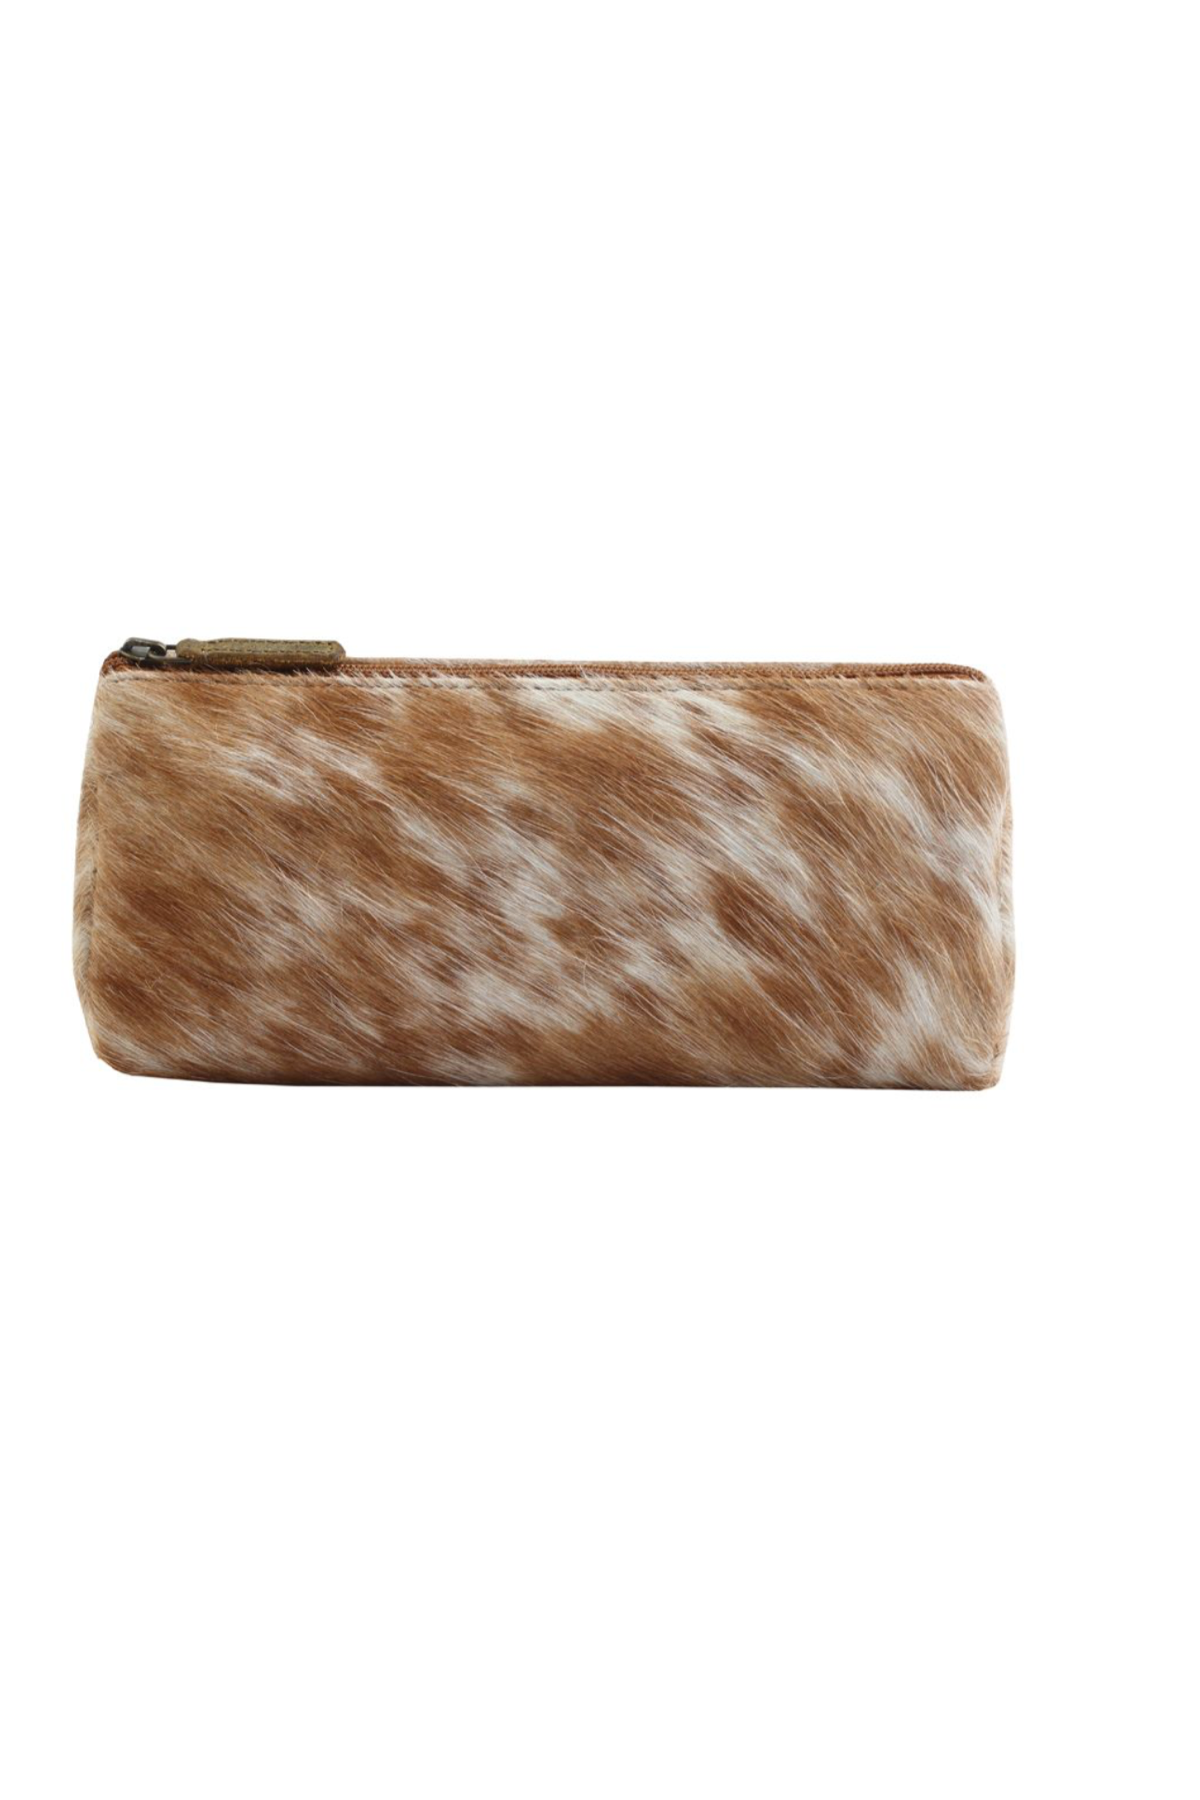 Hairon leather pouch, leather toiletry bag